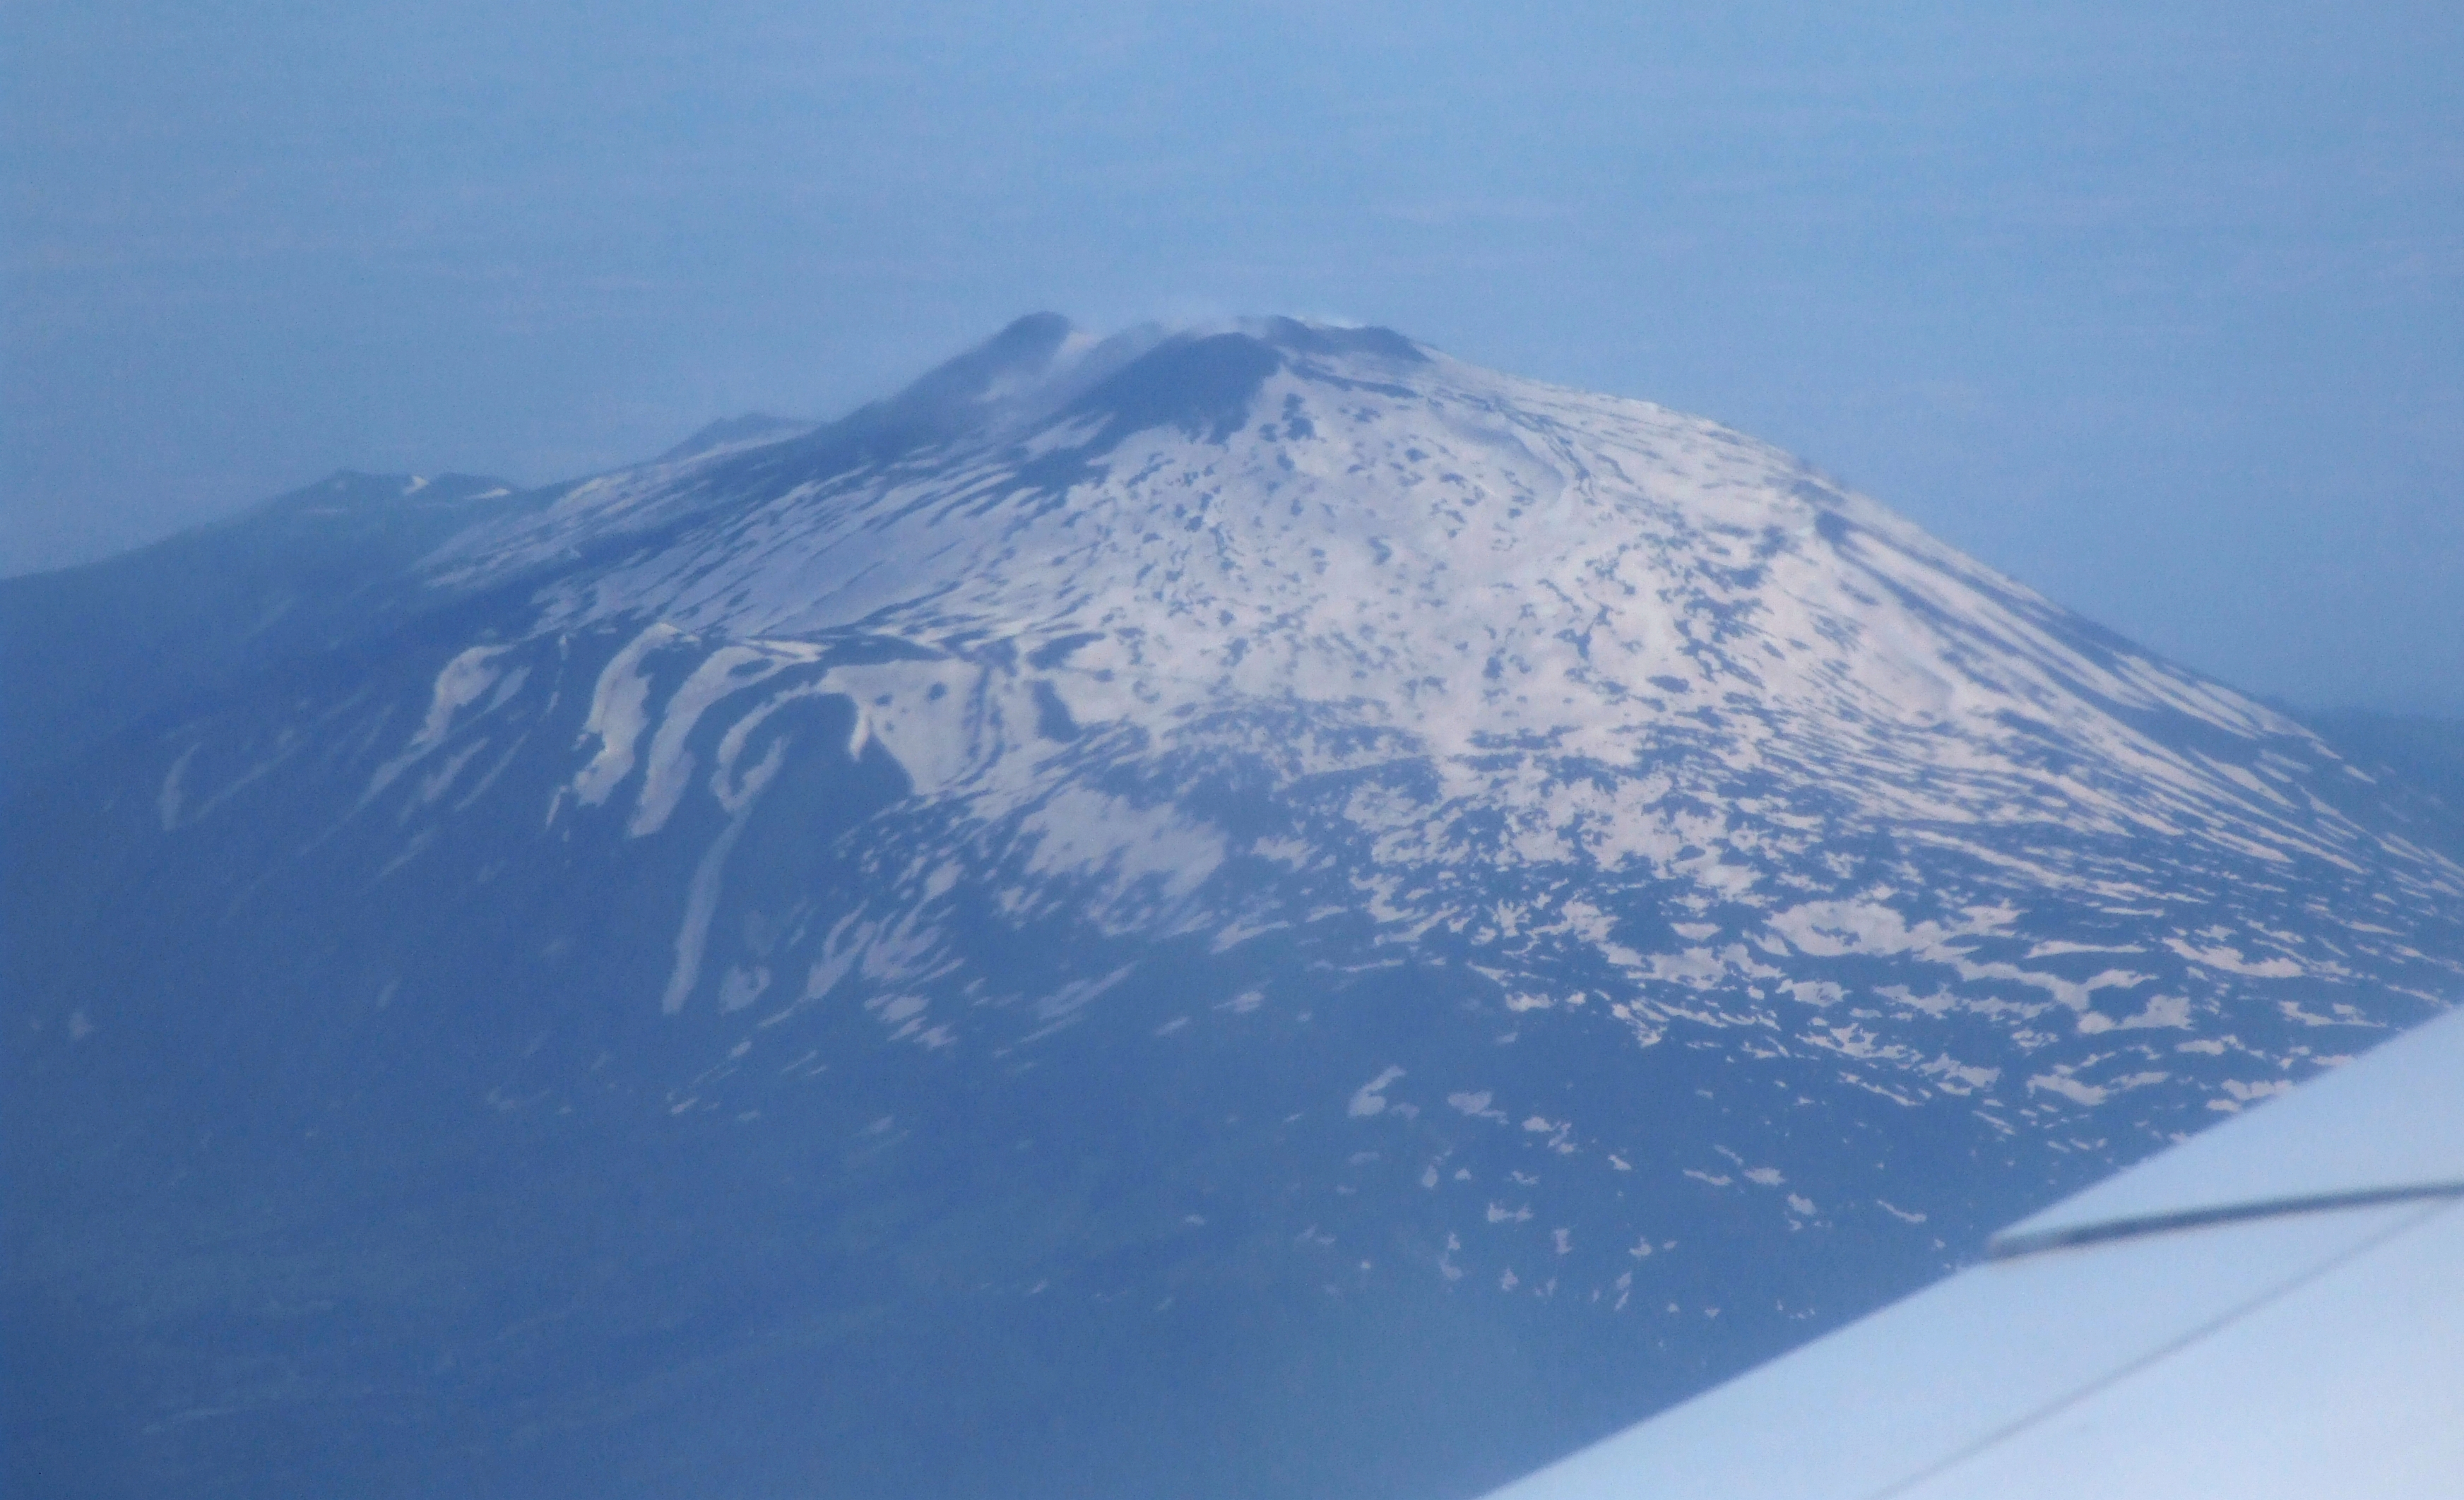 Etna_vulcano-sicilia-italy - creative commons by gnuckx photo